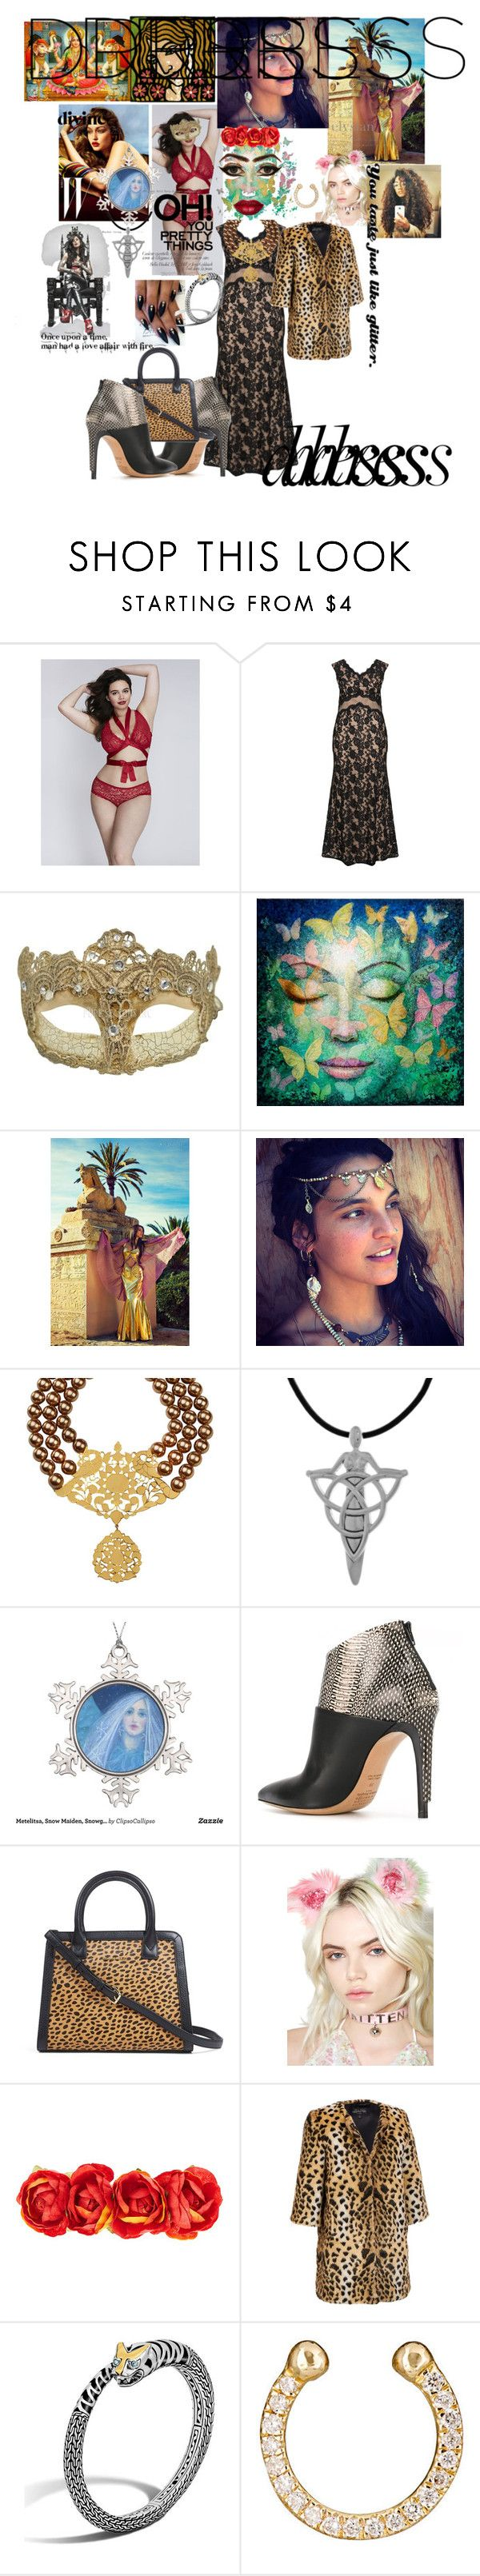 """""""Divine love affair ♡with goddess in two tone dress 👗♡"""" by maijah ❤ liked on Polyvore featuring Cacique, Gina Bacconi, Masquerade, Gipsy, Carolina Glamour Collection, Maison Margiela, Vera Bradley, Kat Von D, KritterKlips and John Hardy"""